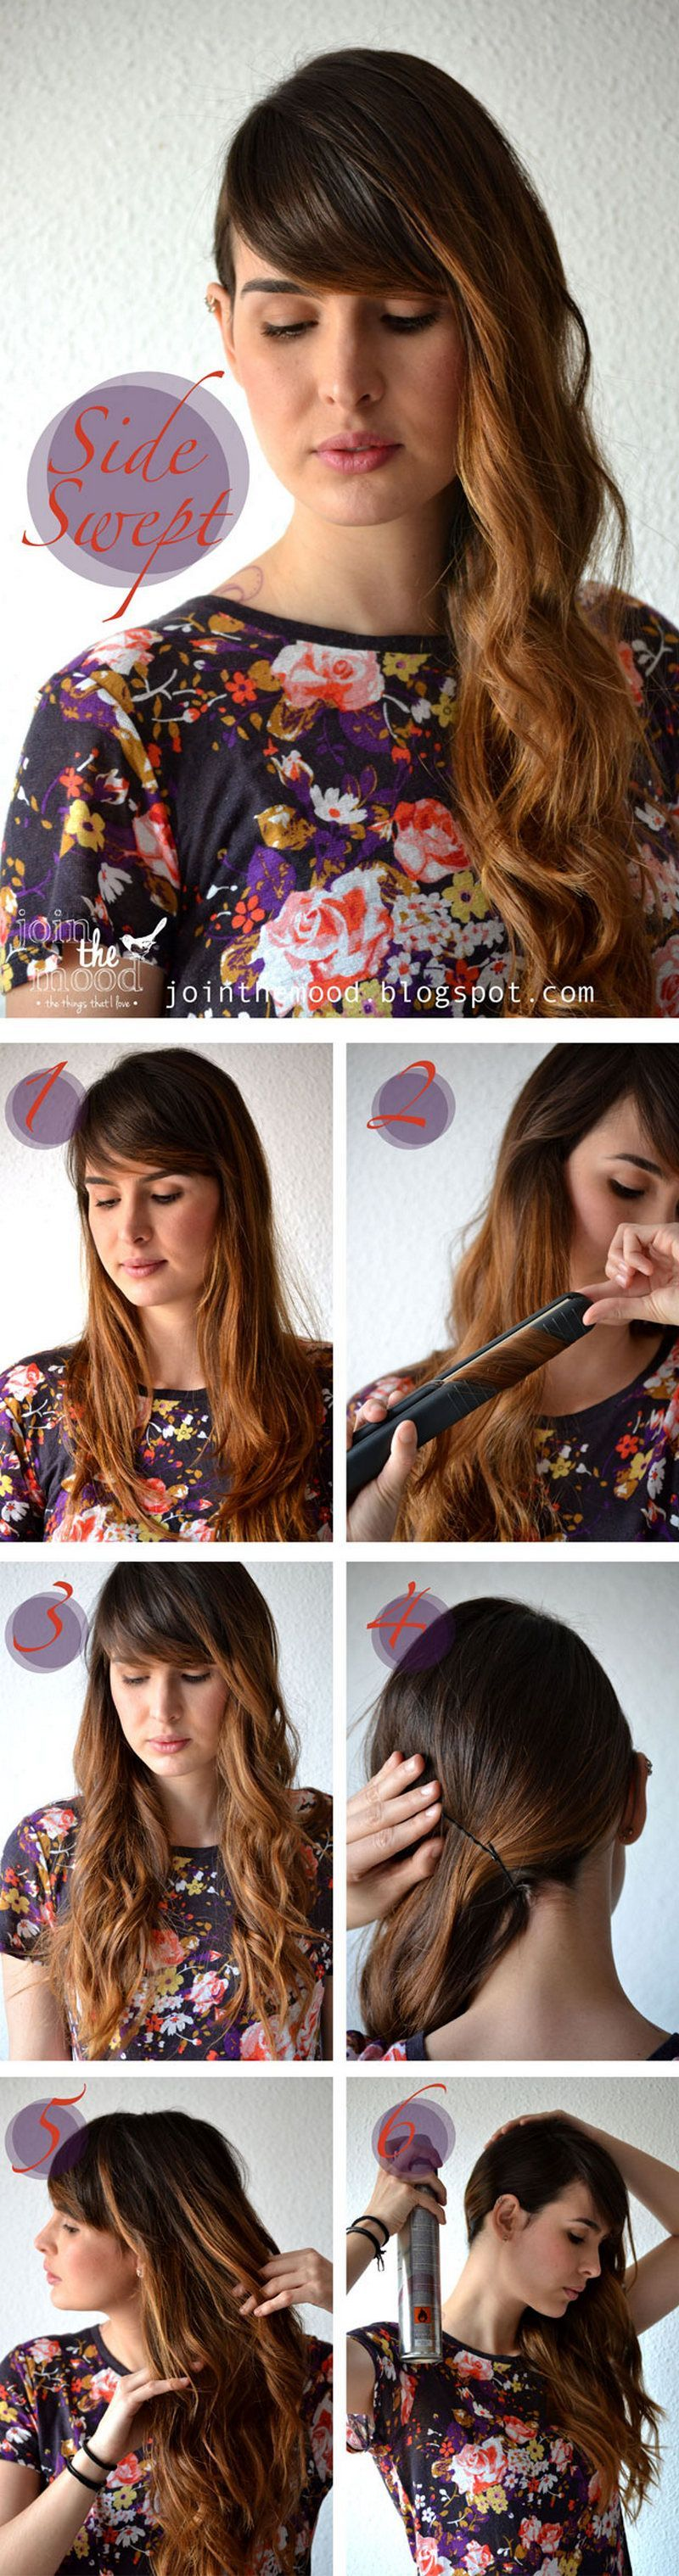 cool die diy easy easy hairstyles to do at home